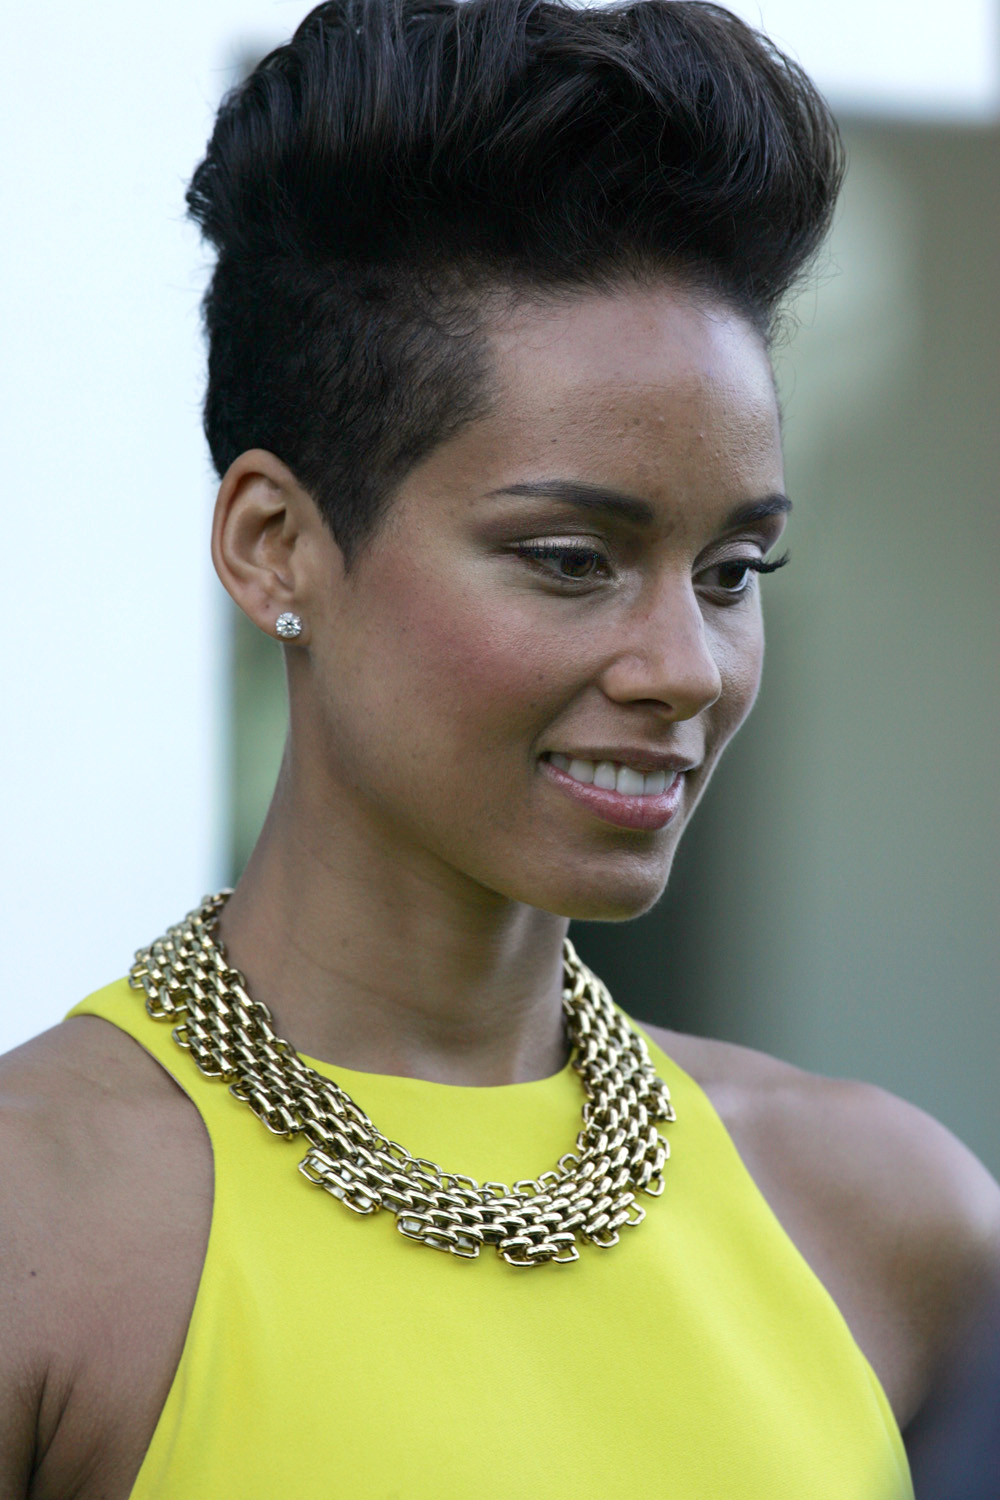 Alicia Keys - Wikipedia Alicia Keys